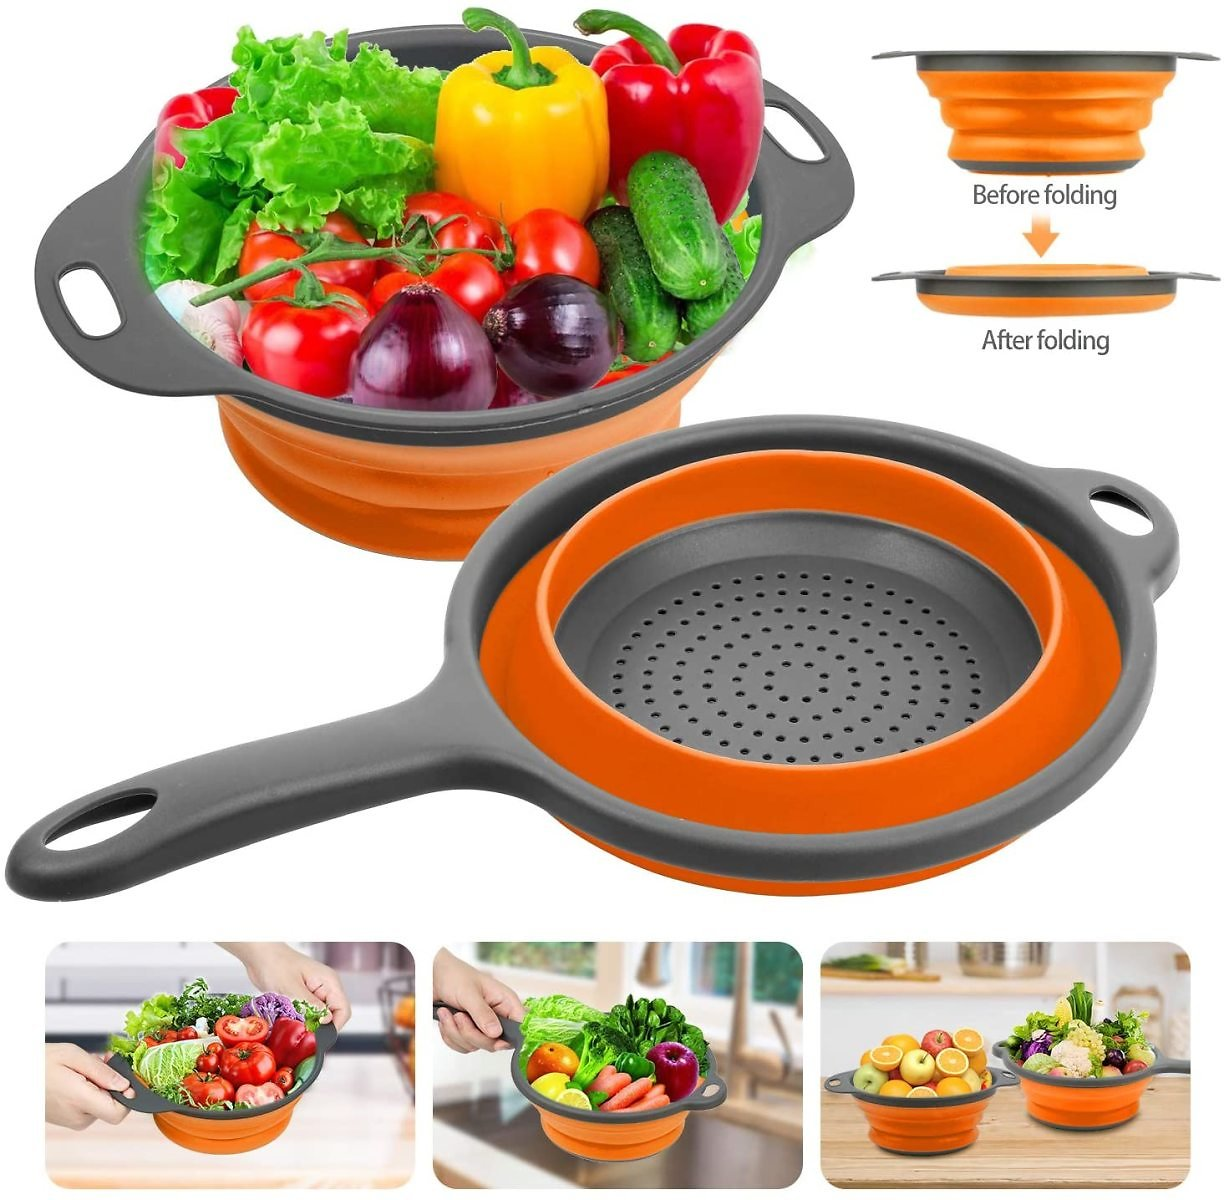 2-Piece Rareccy Silicone Collapsible Colanders and Strainers for $6.99